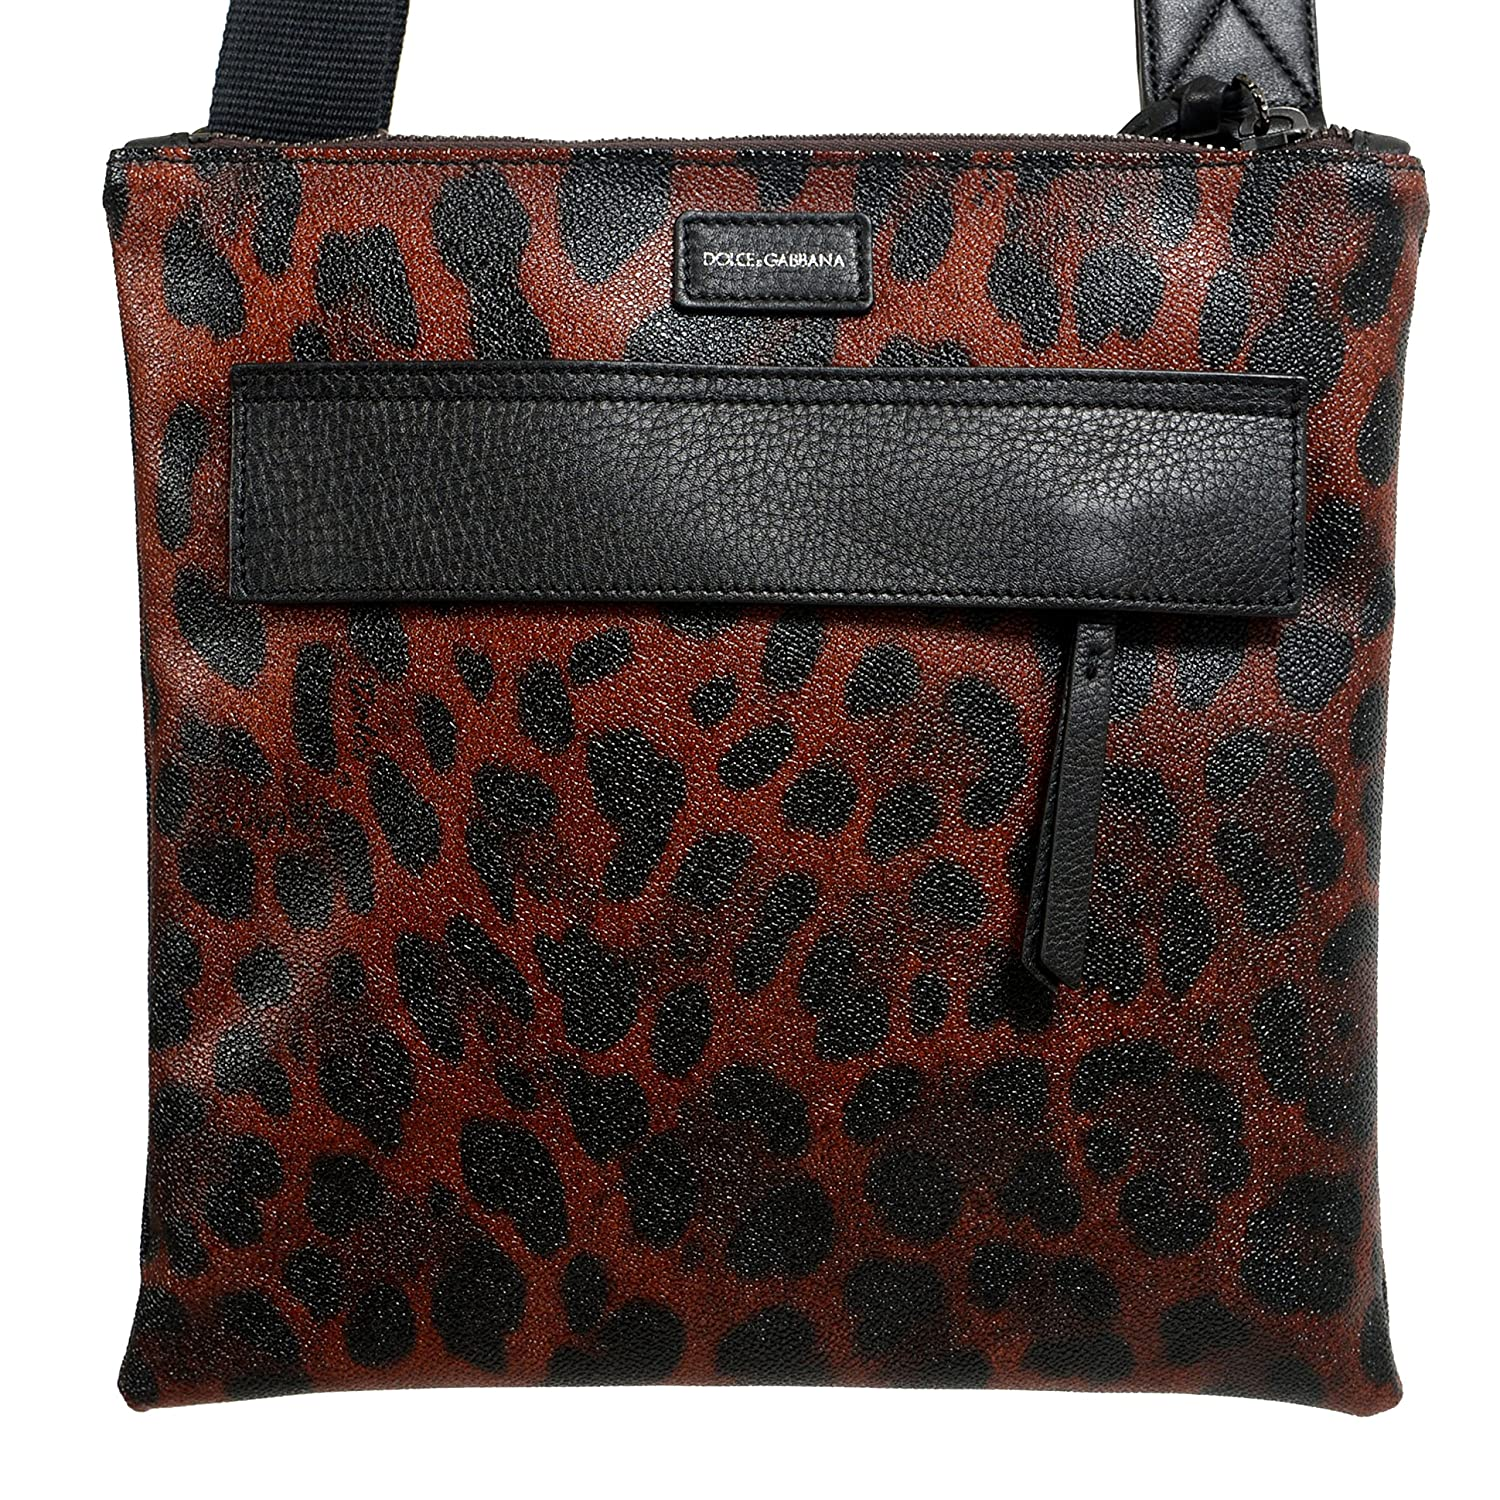 c72f060926 Amazon.com  Dolce   Gabbana Leopard Print Leather Adjustable Strap Men s  Crossbody Bag  Shoes